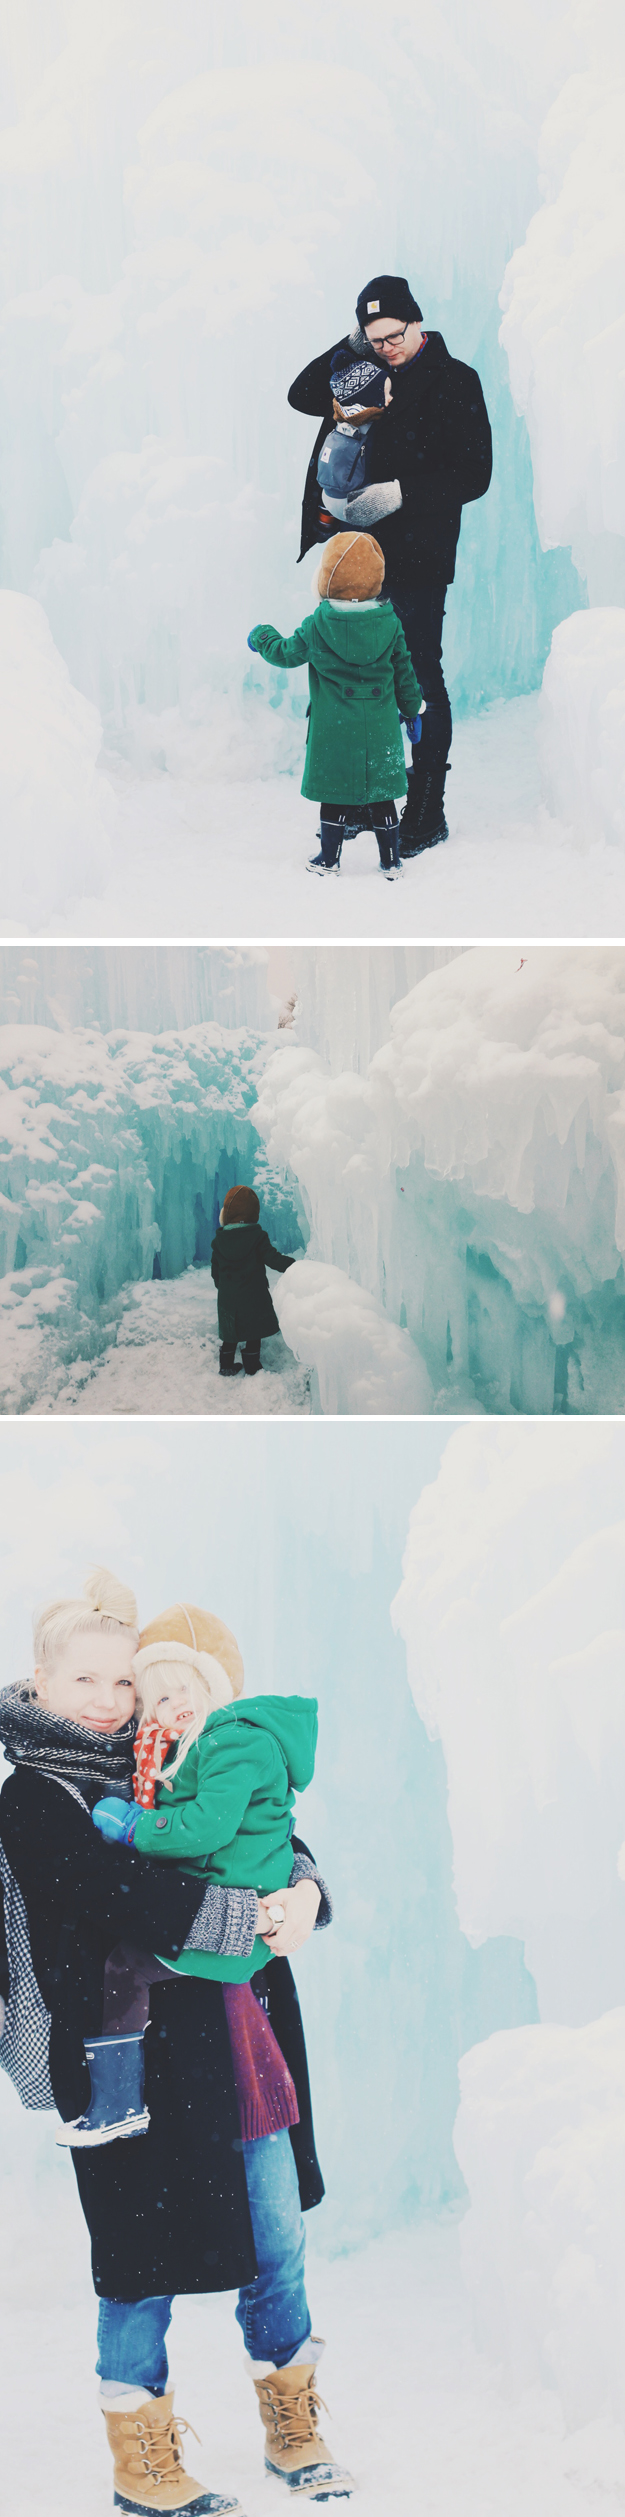 The Midway Ice Castles | Sycamore